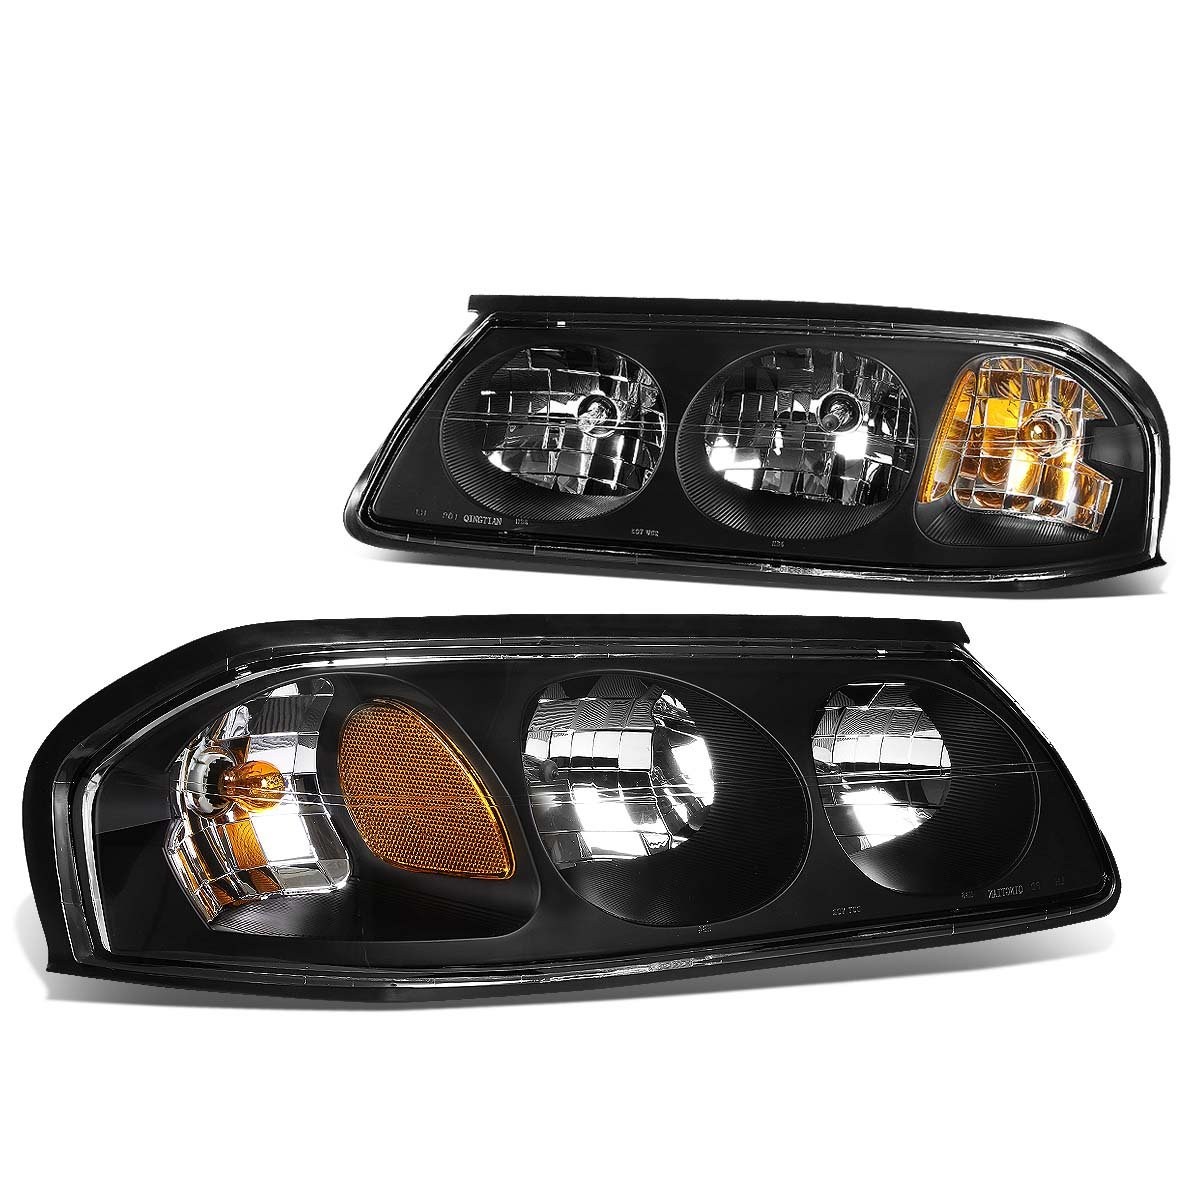 DNA Motoring HL-OH-CI00-BK-AM Headlight Assembly, Driver and Passenger Side